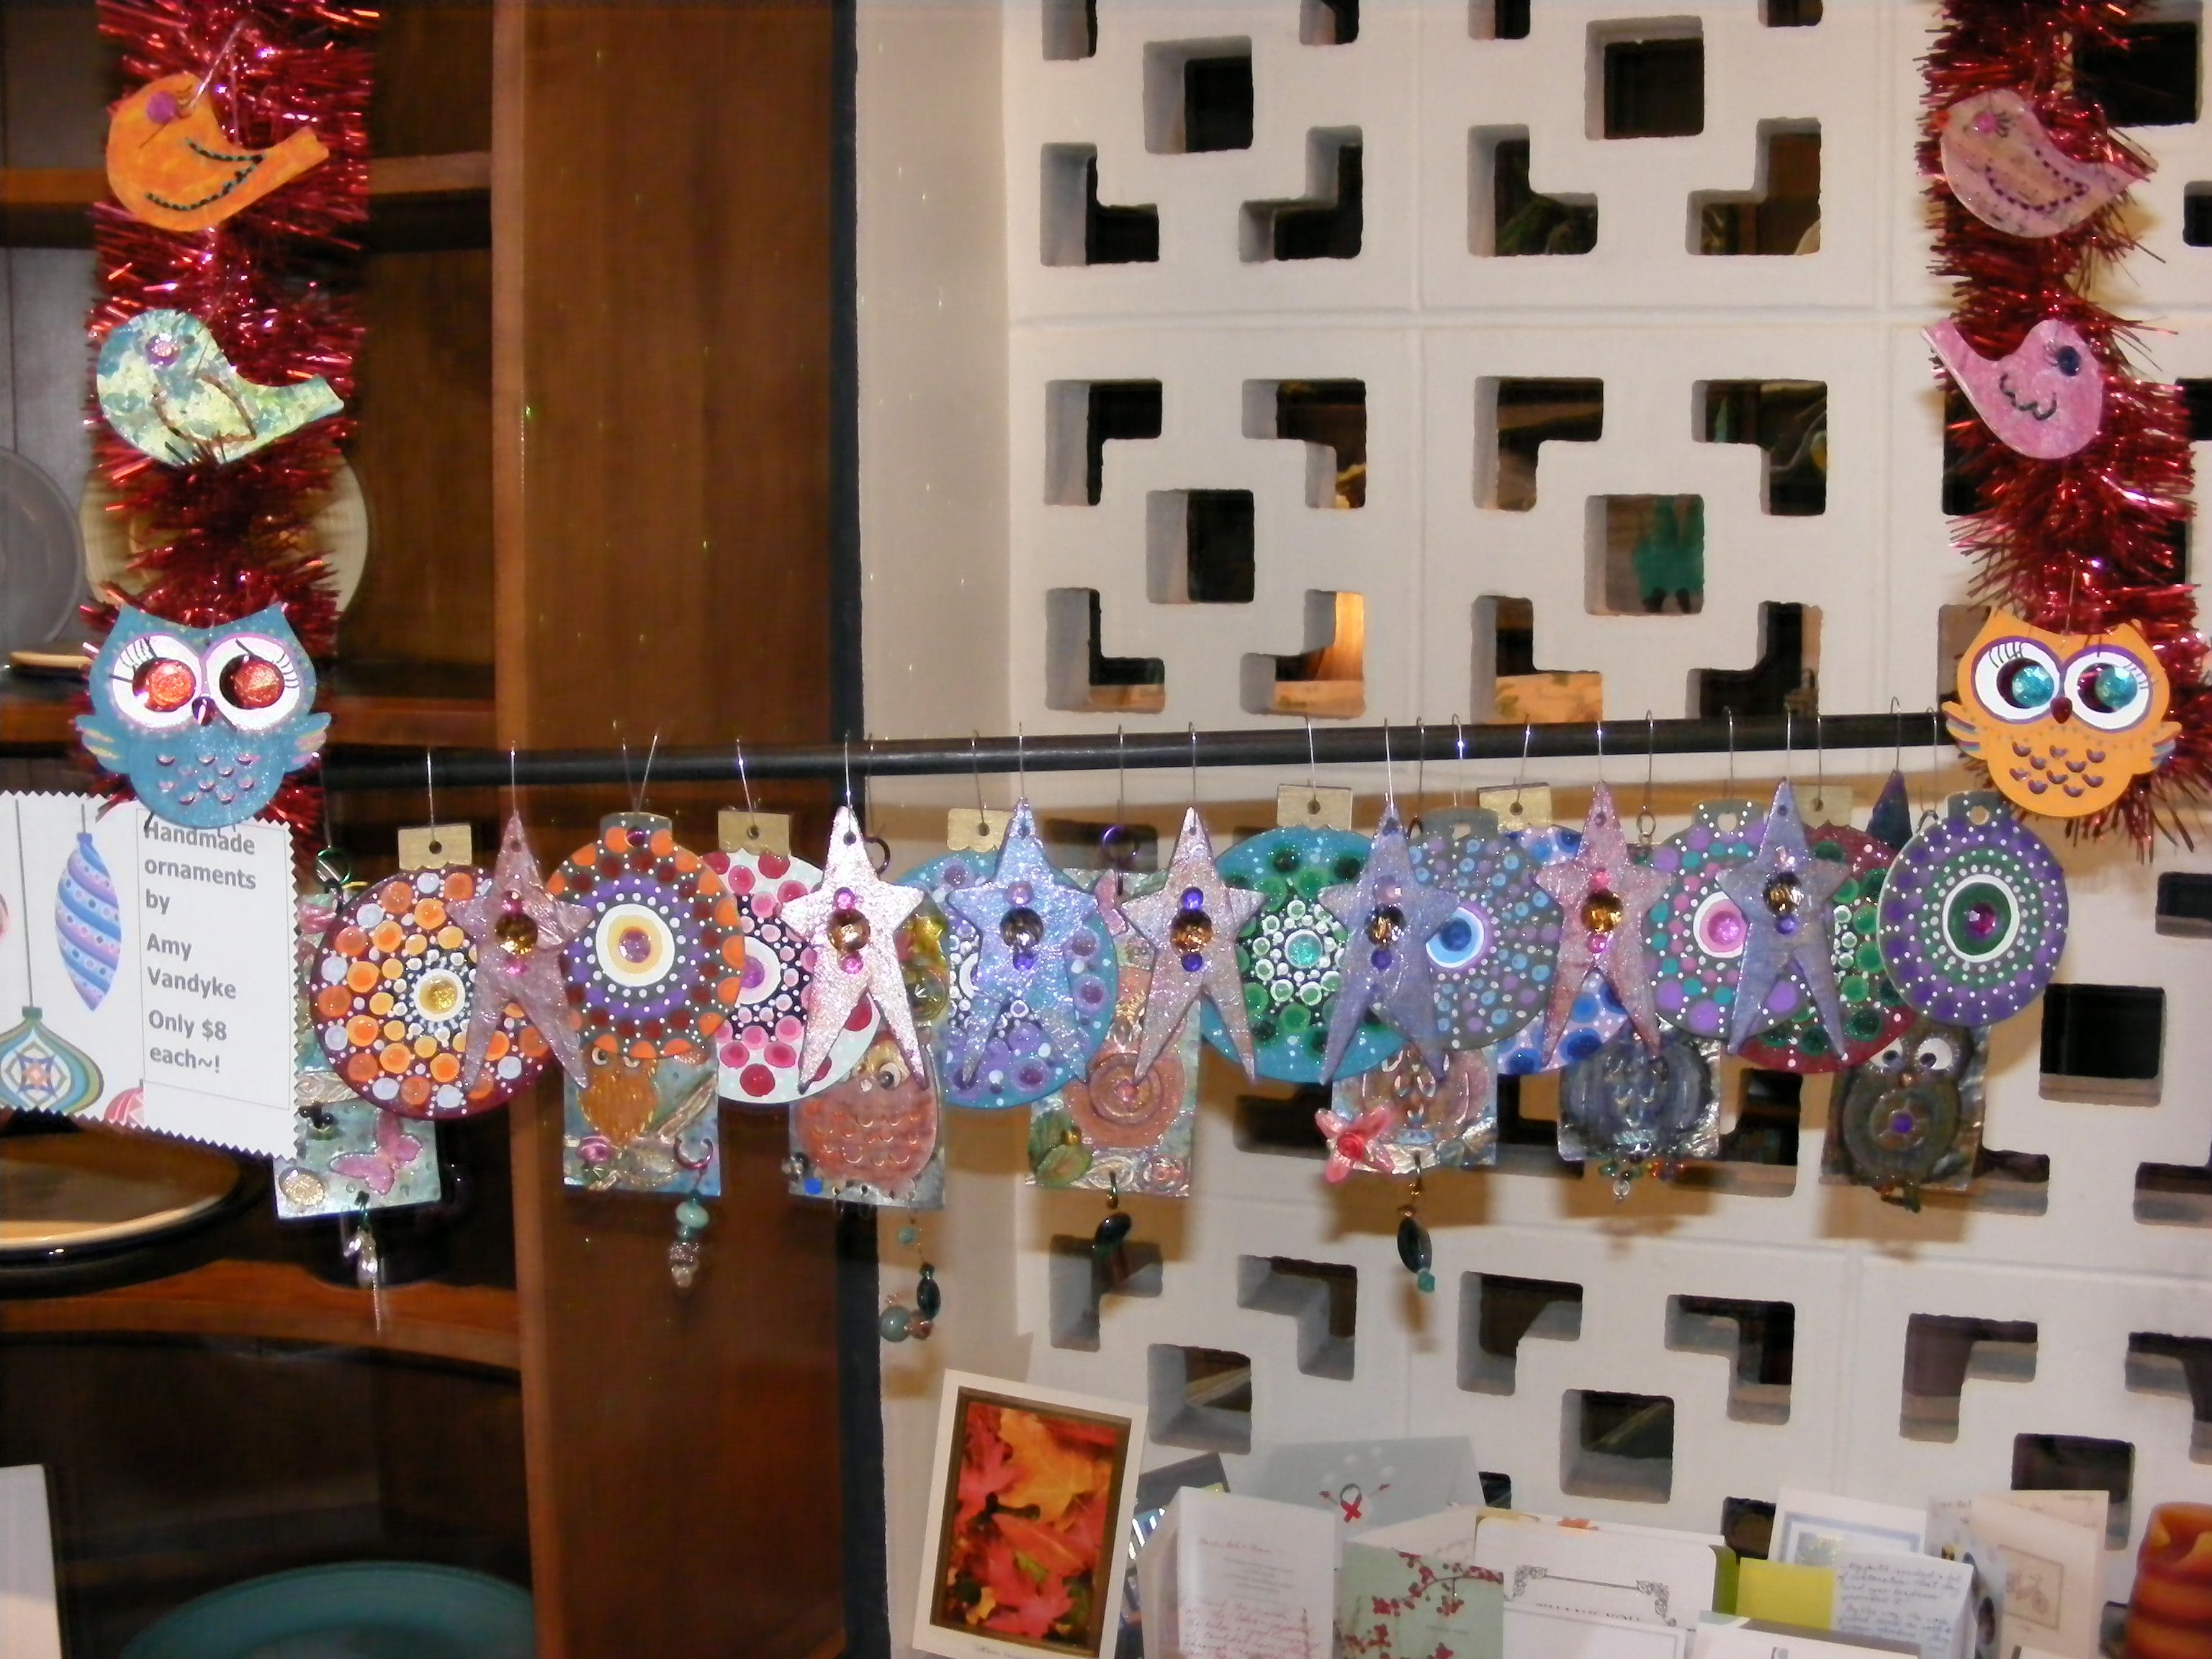 Original Ornaments by Amy Vandyke~! Join us at Retro for Art Hop tonight~! 5-9pm for some local art, a glass of wine, and some snacks~! — at Retro Kalamazoo.